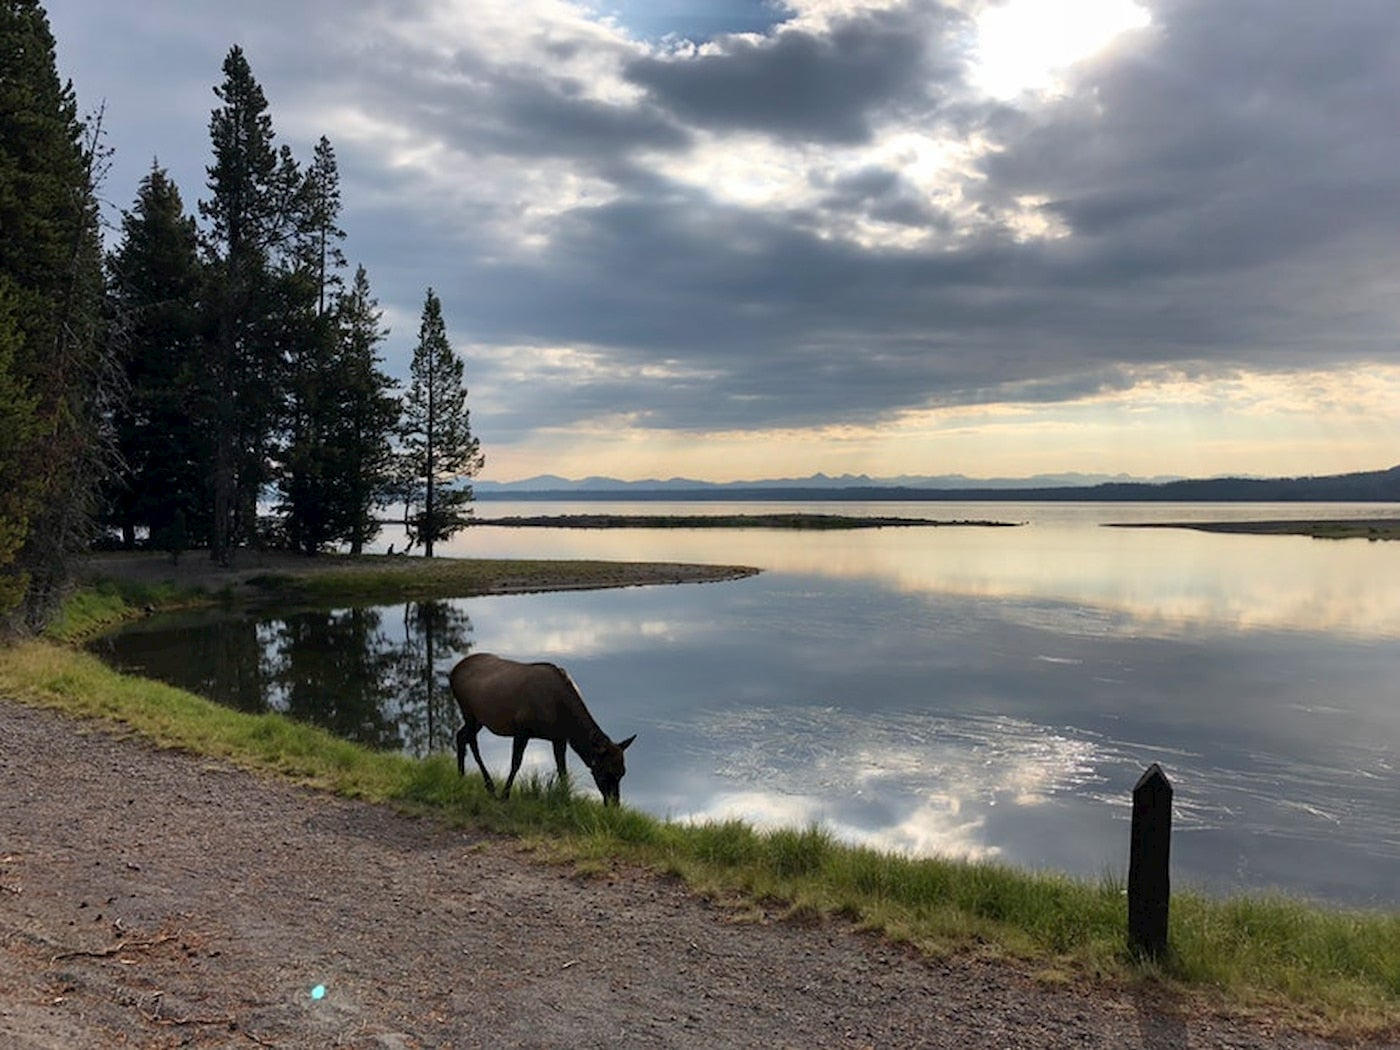 Elk grazing beside a large reflective lake in Wyoming at Grant Village.